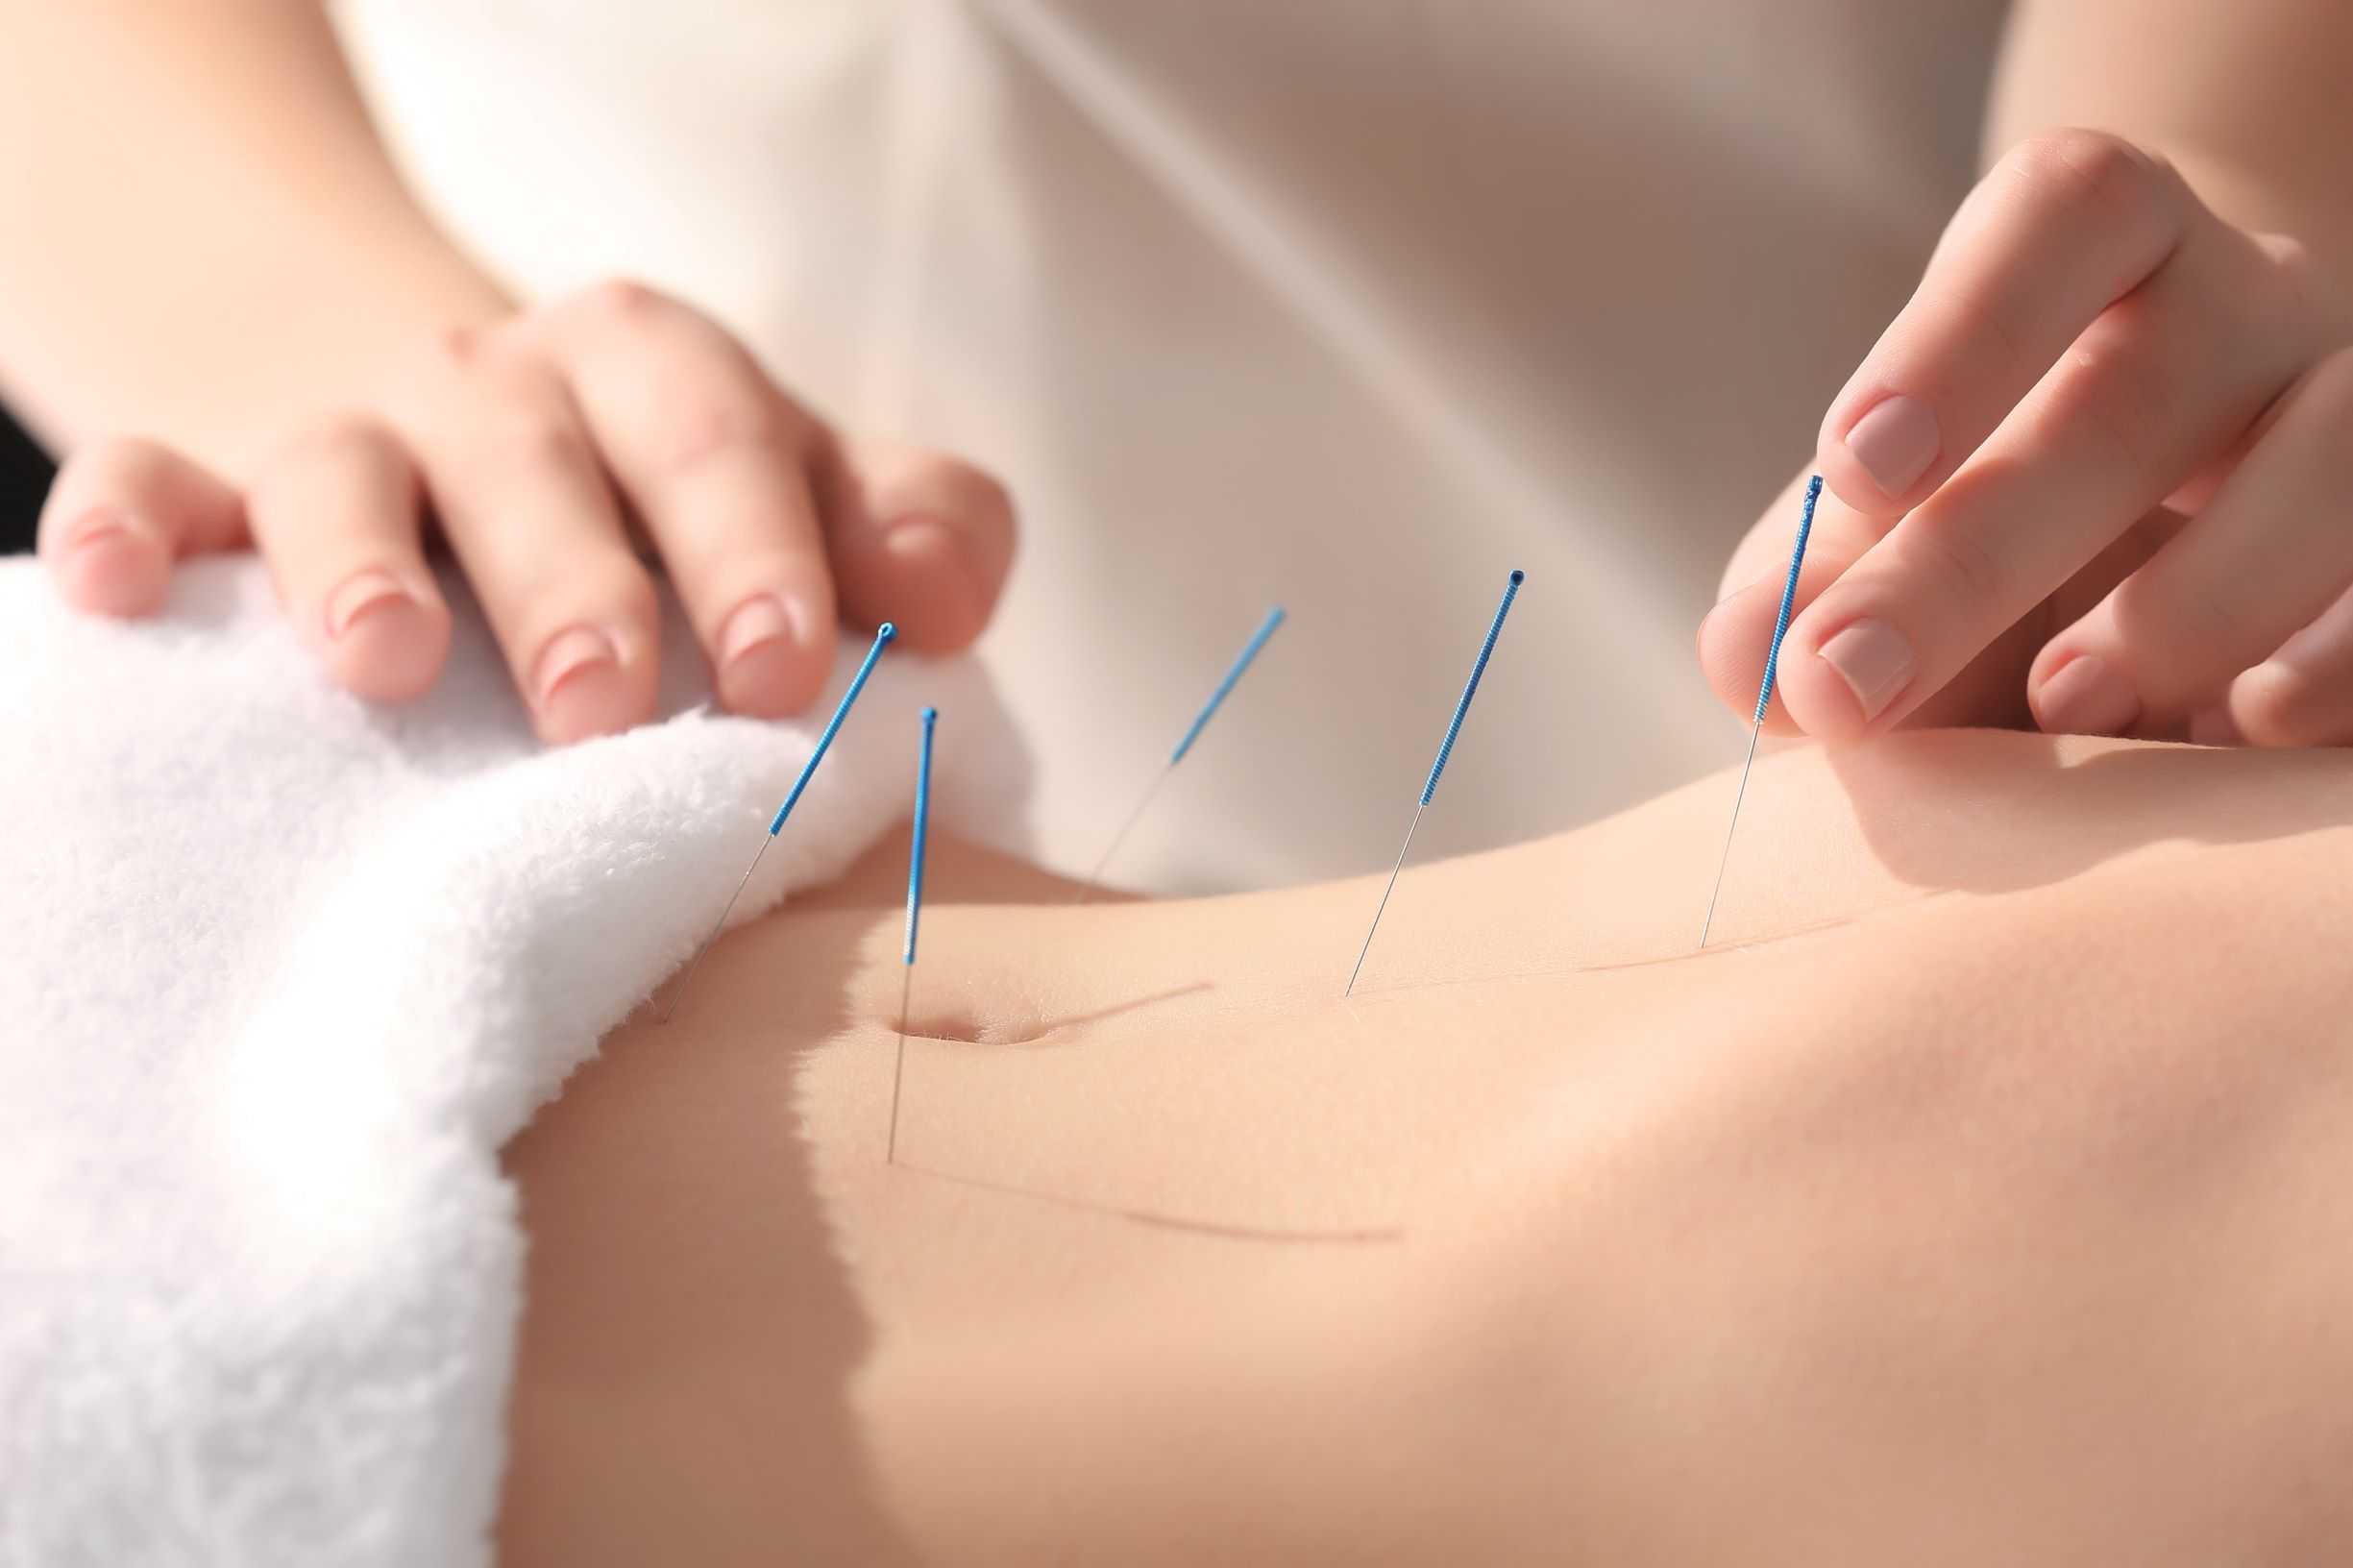 woman having acupuncture done for fertility